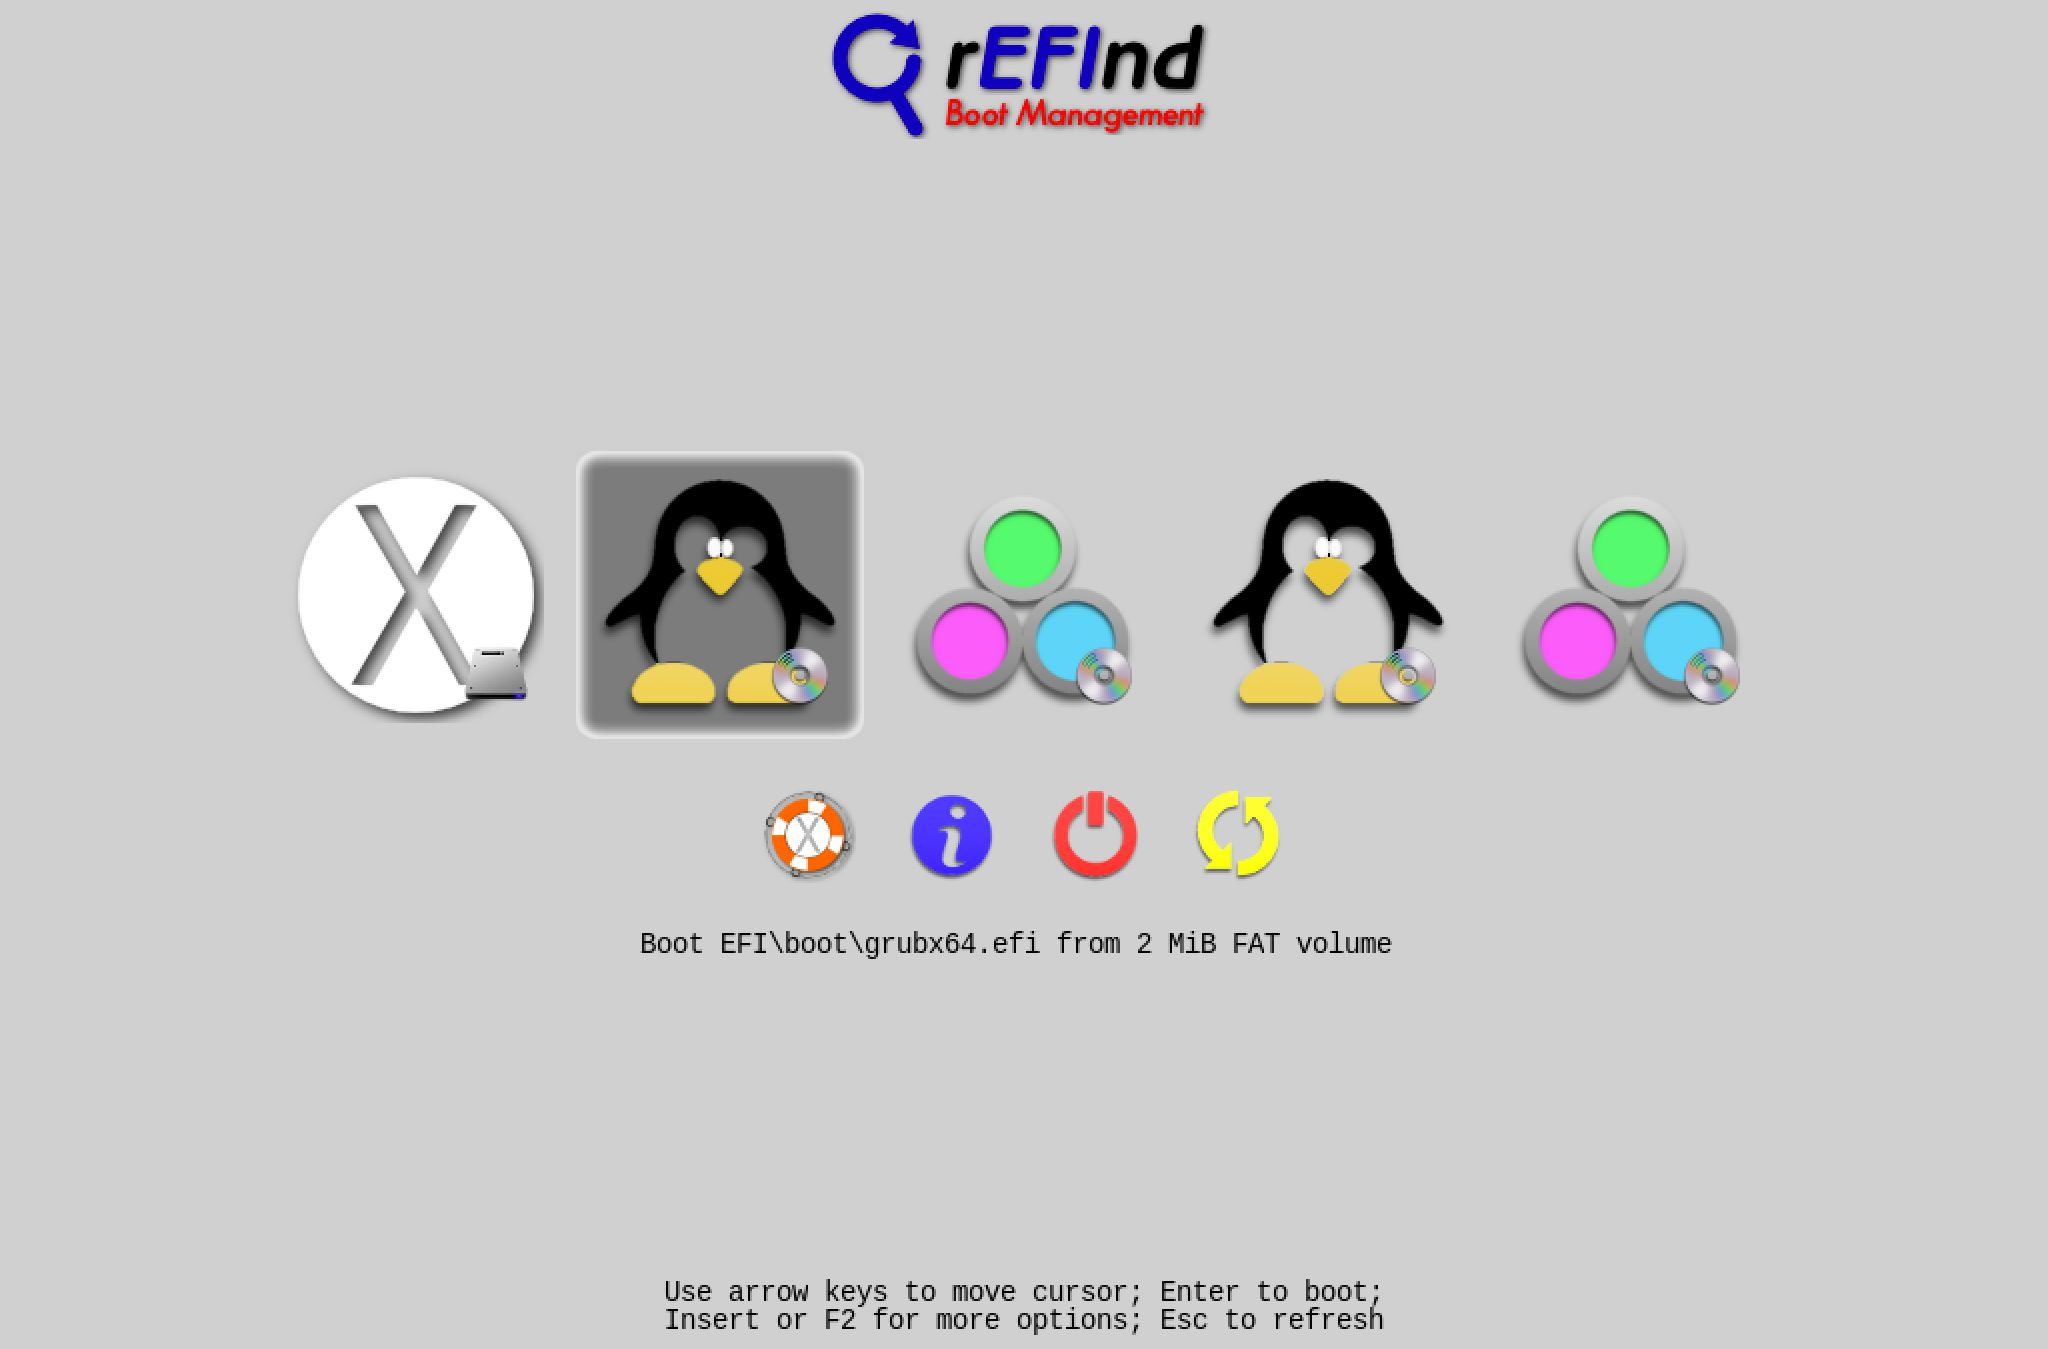 rEFInd boot manager for Mac OS